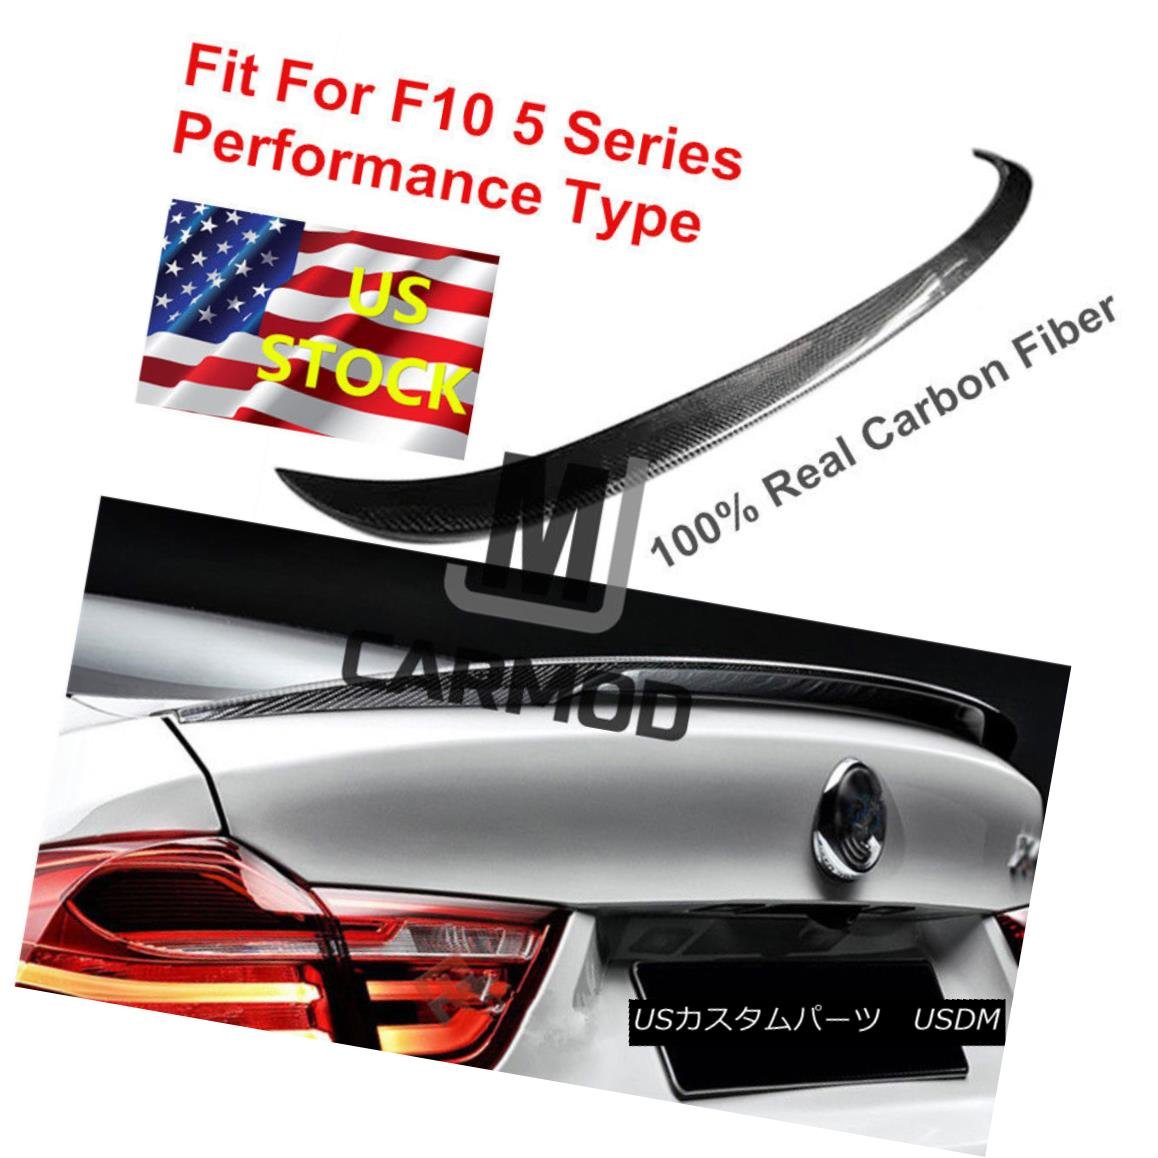 Fit Milan Bolt On Painted Glossy Black Finish ABS Rear Bumper Diffuser